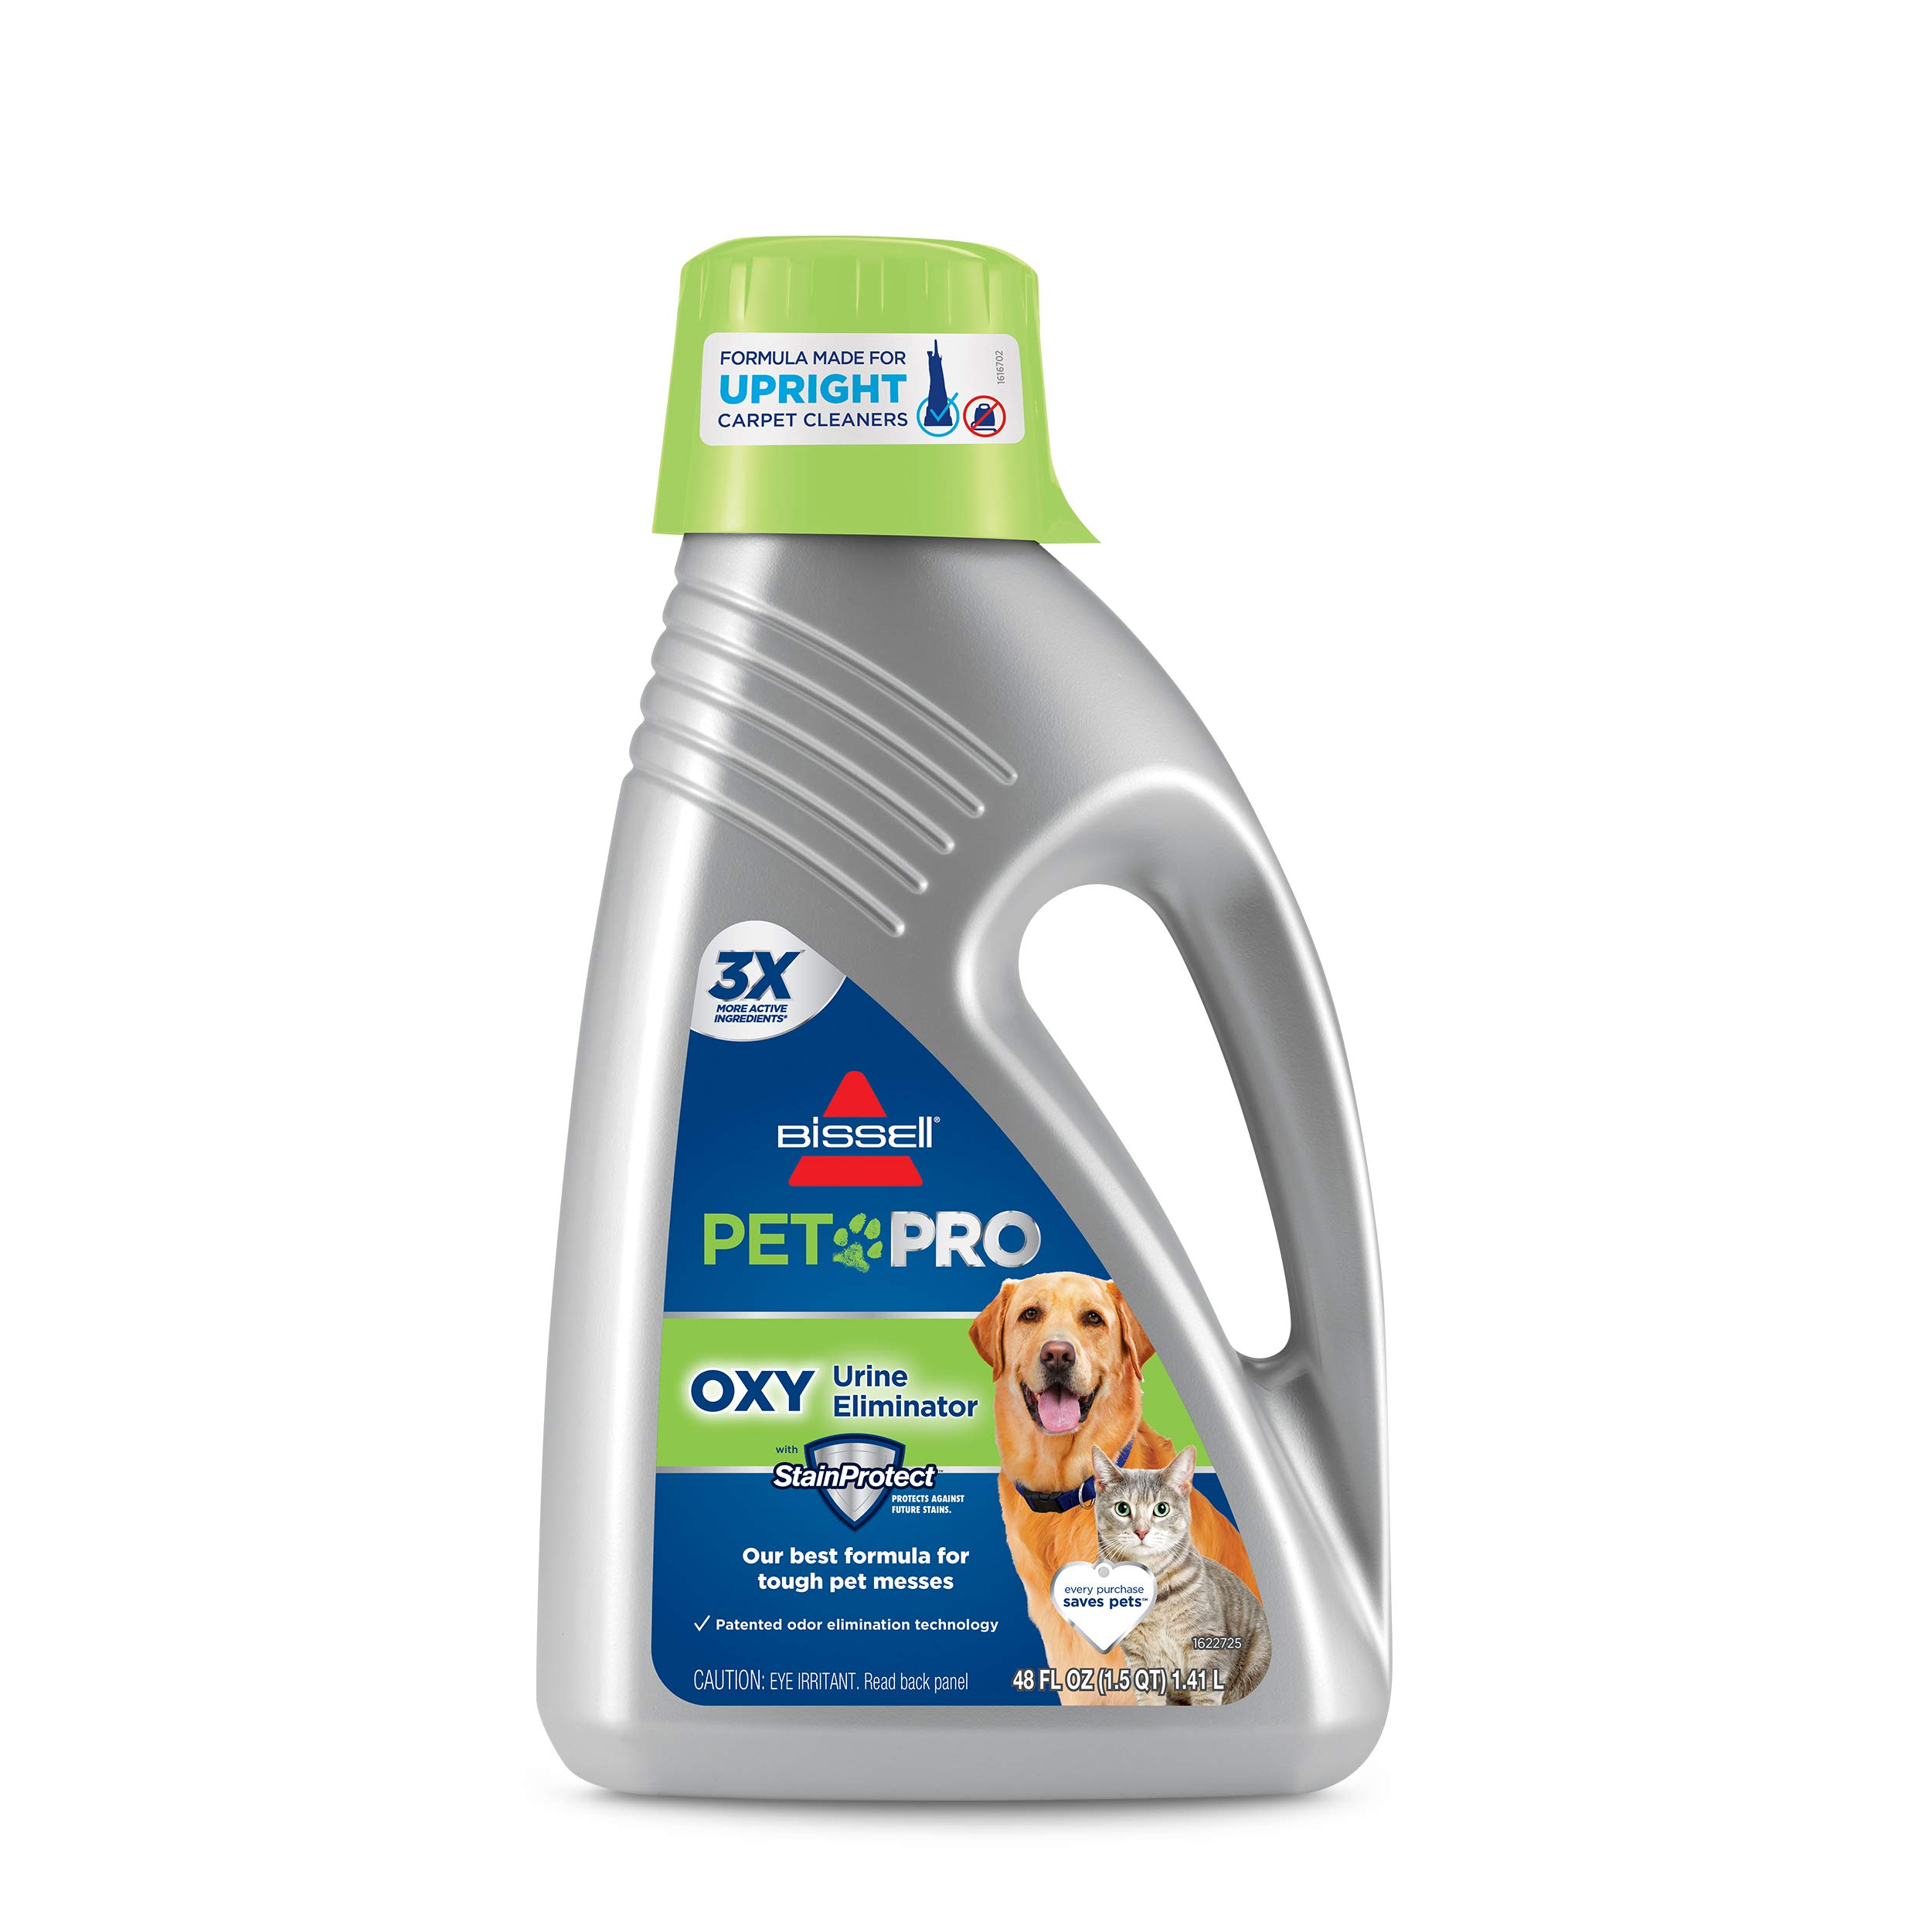 Bissell Professional Pet Urine Eliminator + Oxy Carpet Cleaning Formula, 48 oz, 1990